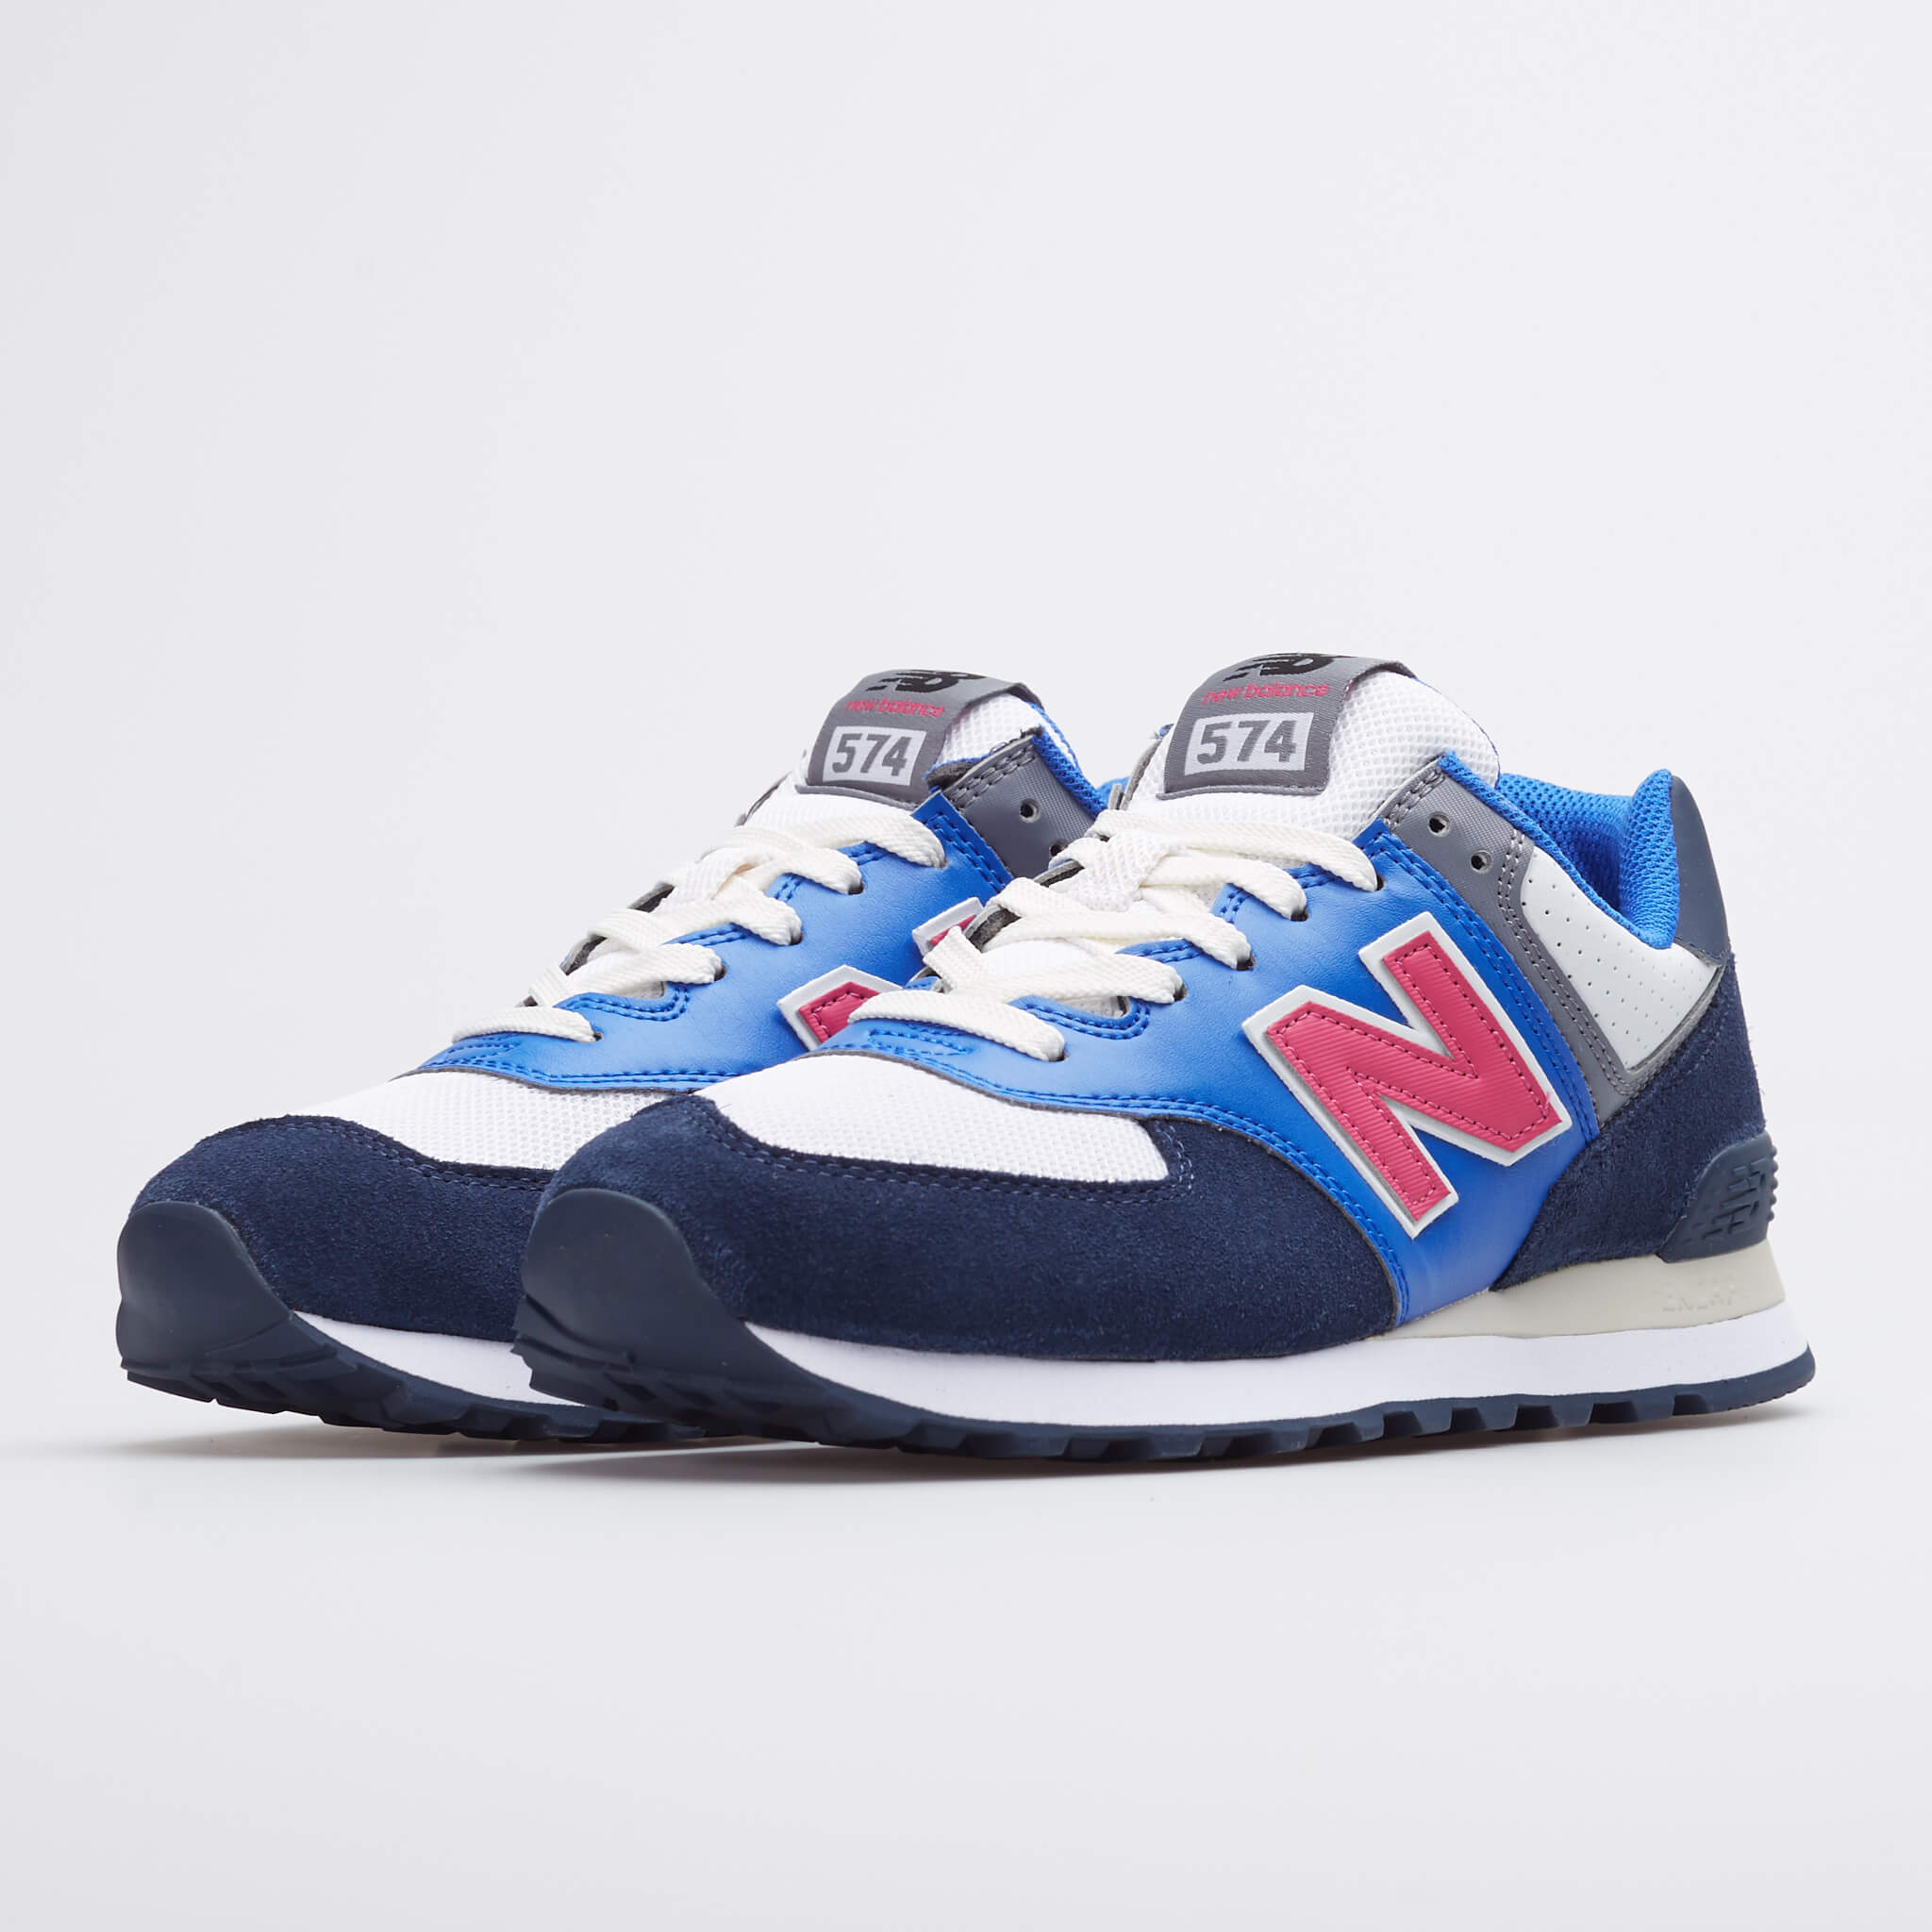 "New Balance 574 ""Navy Blue"": Sale Price: $44.99 (Retail $75)  – free shipping on orders $50+"